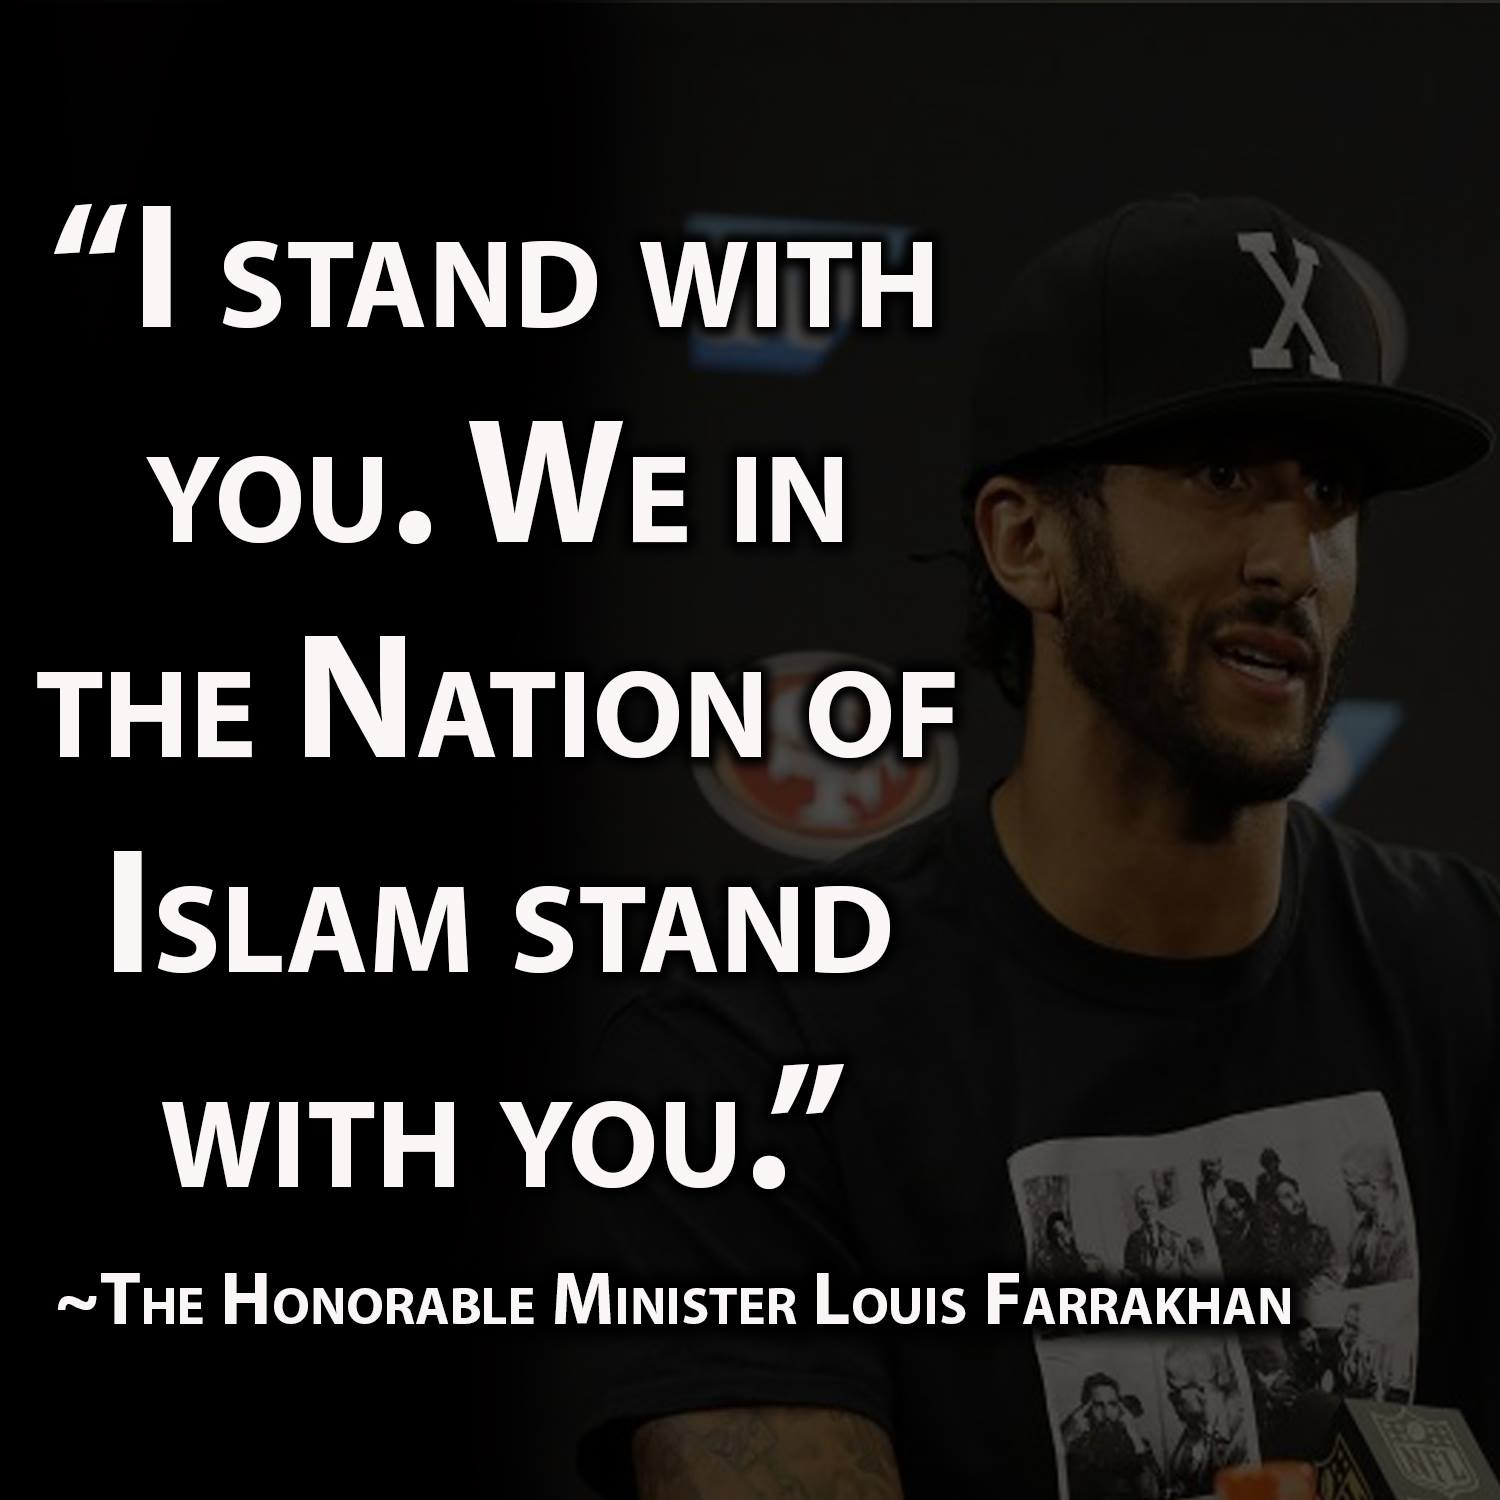 The Honorable Minister Louis Farrakhan's Statement in support of NFL player Colin Kaepernick